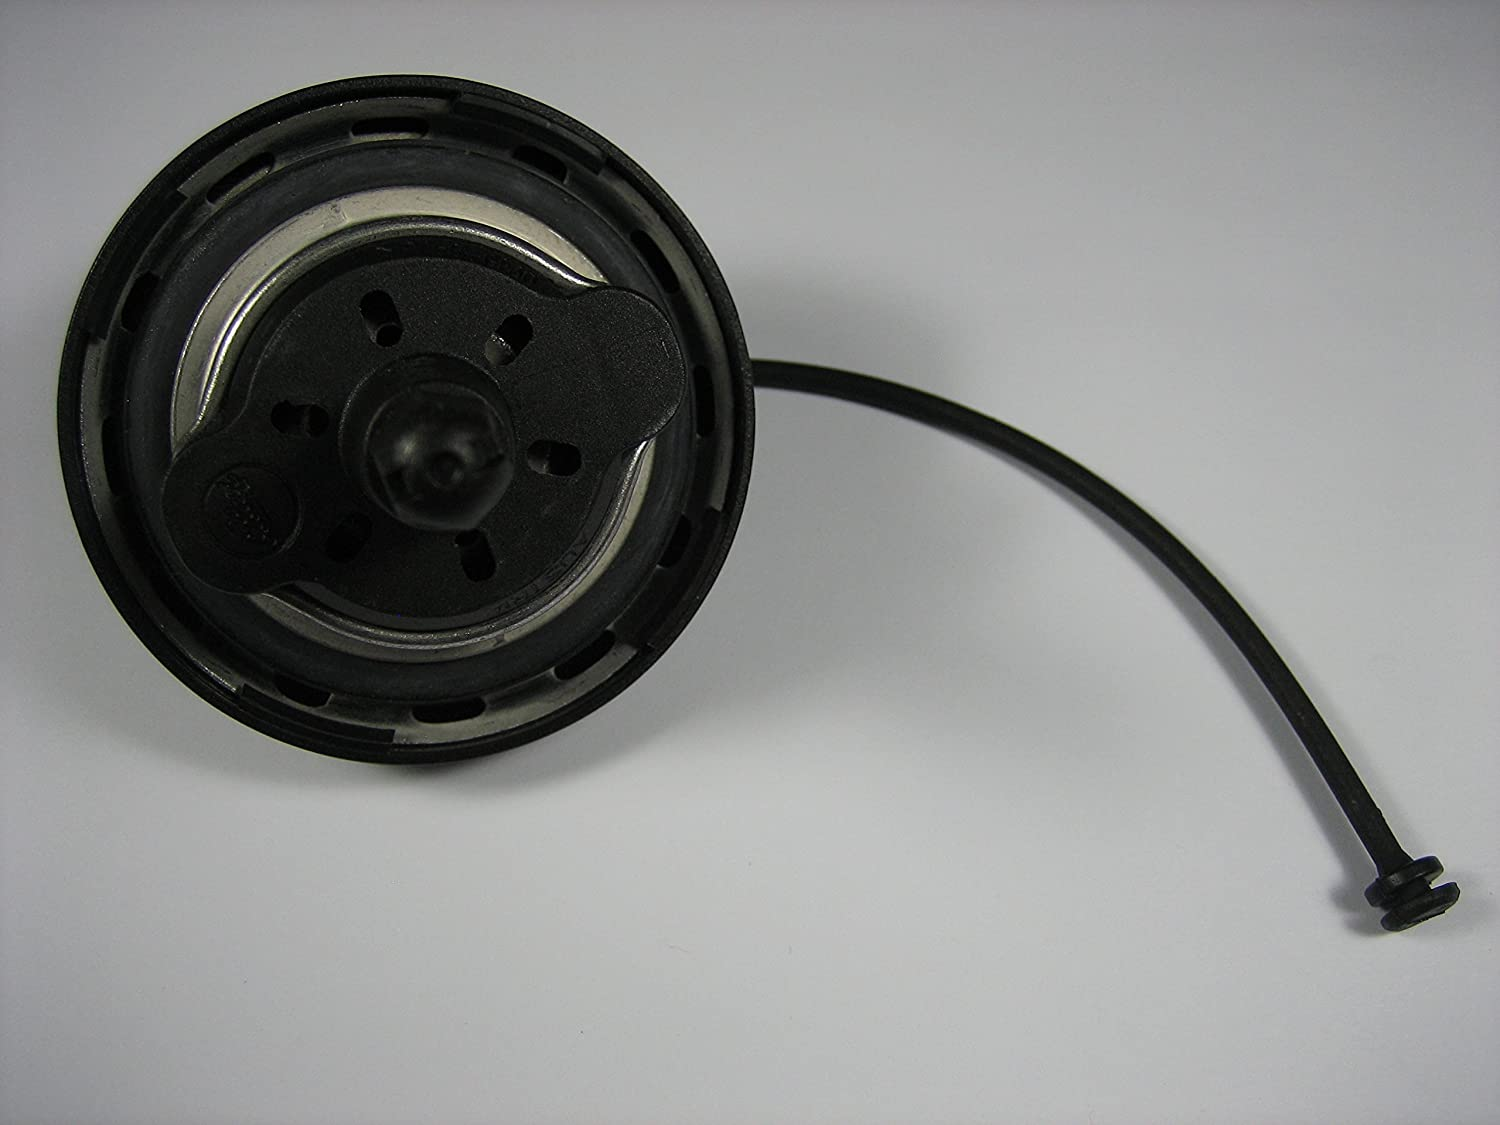 Genuine 2003-2012 Range Rover Petrol Fuel Gas Cap